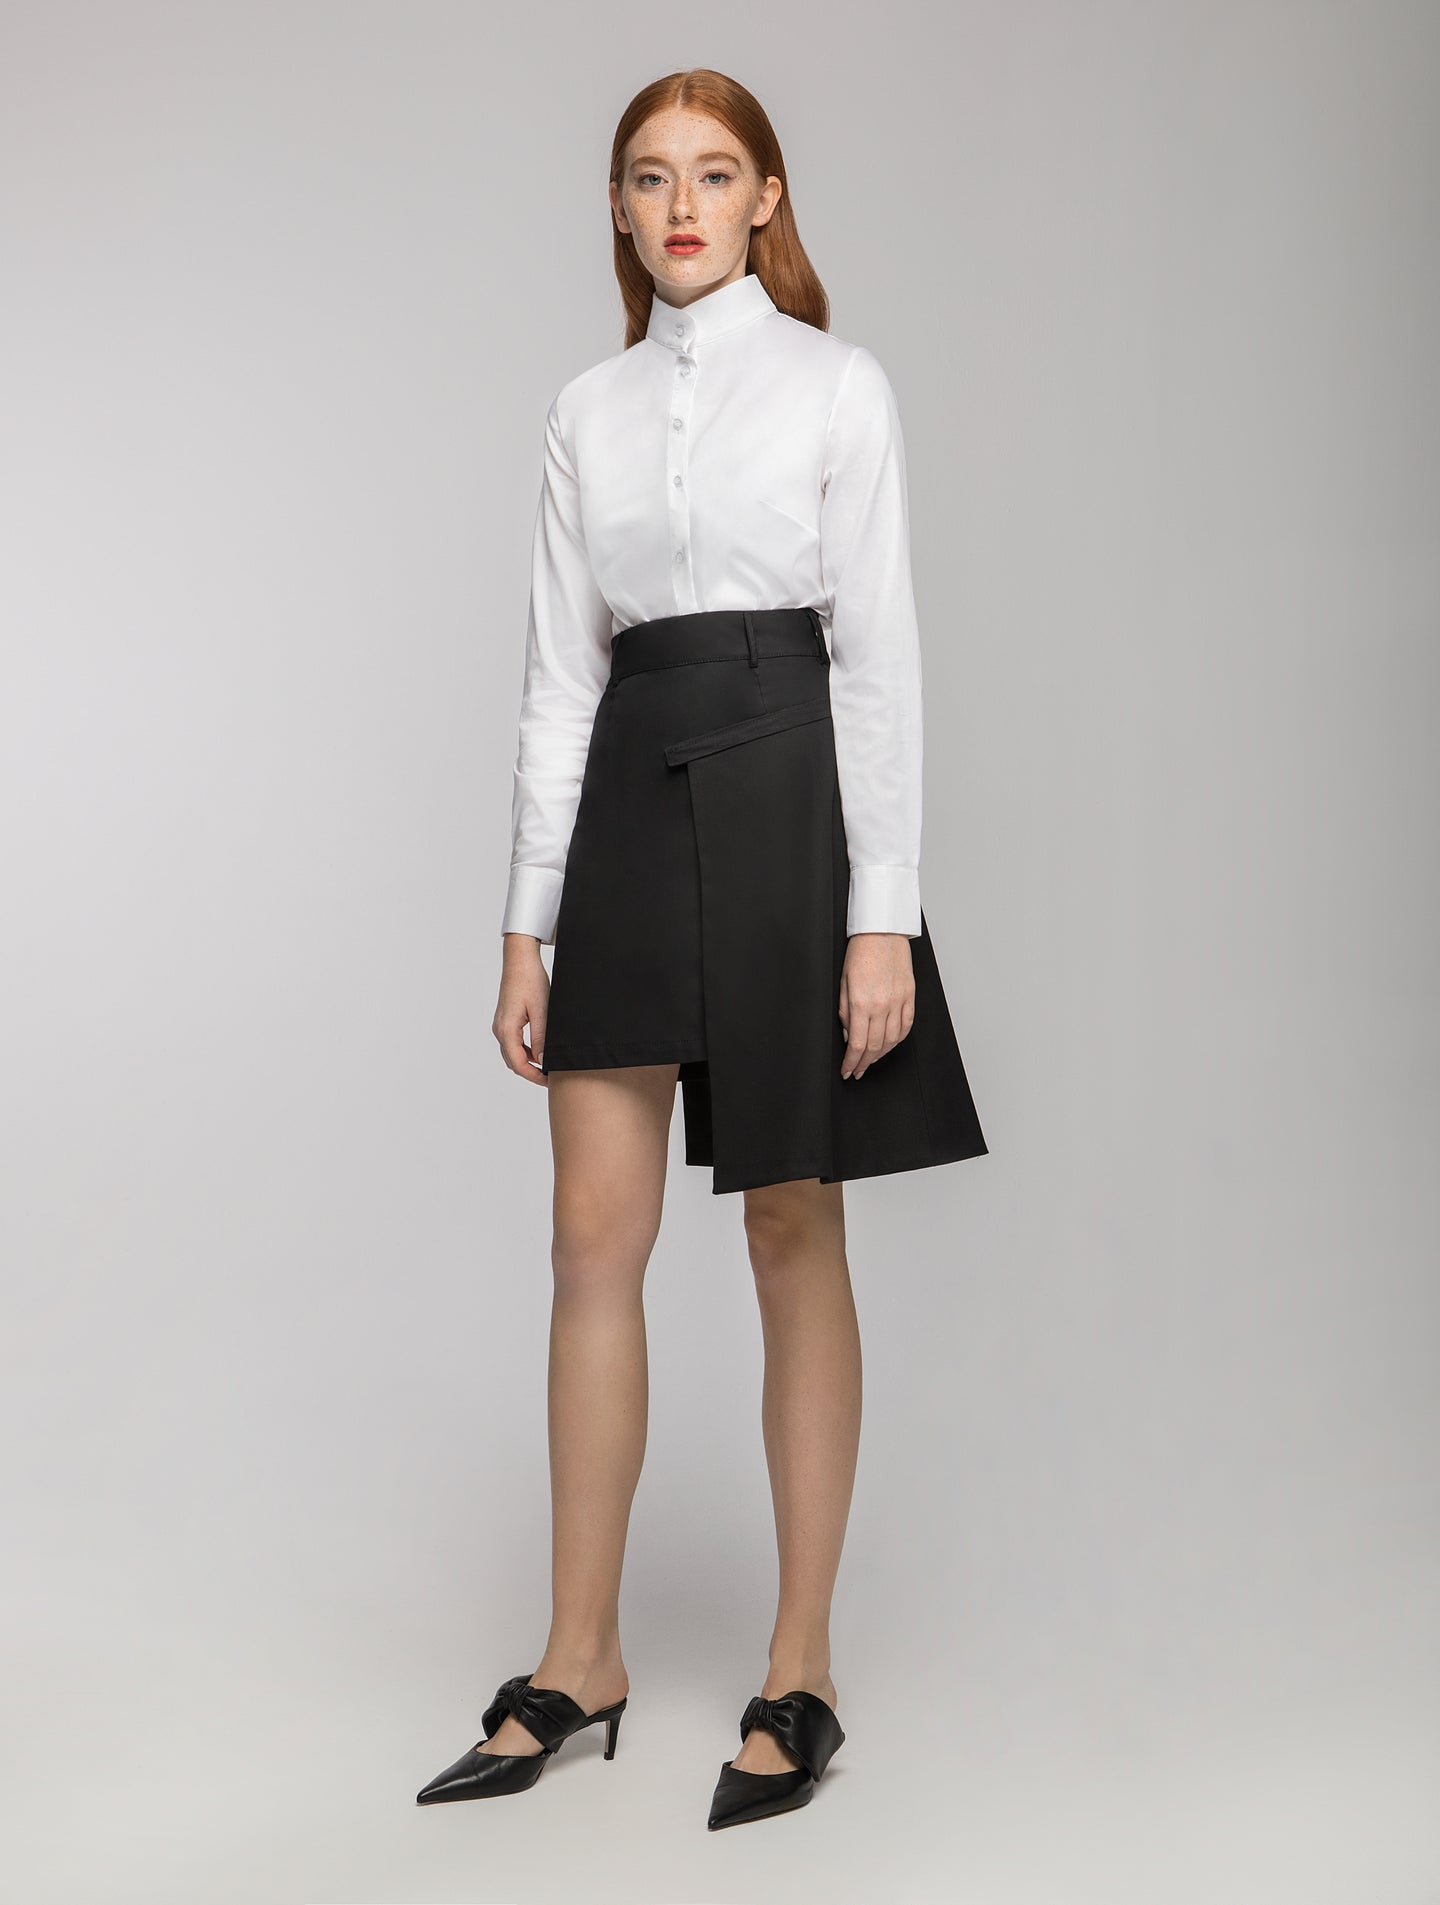 Black Skirt with removable half skirt